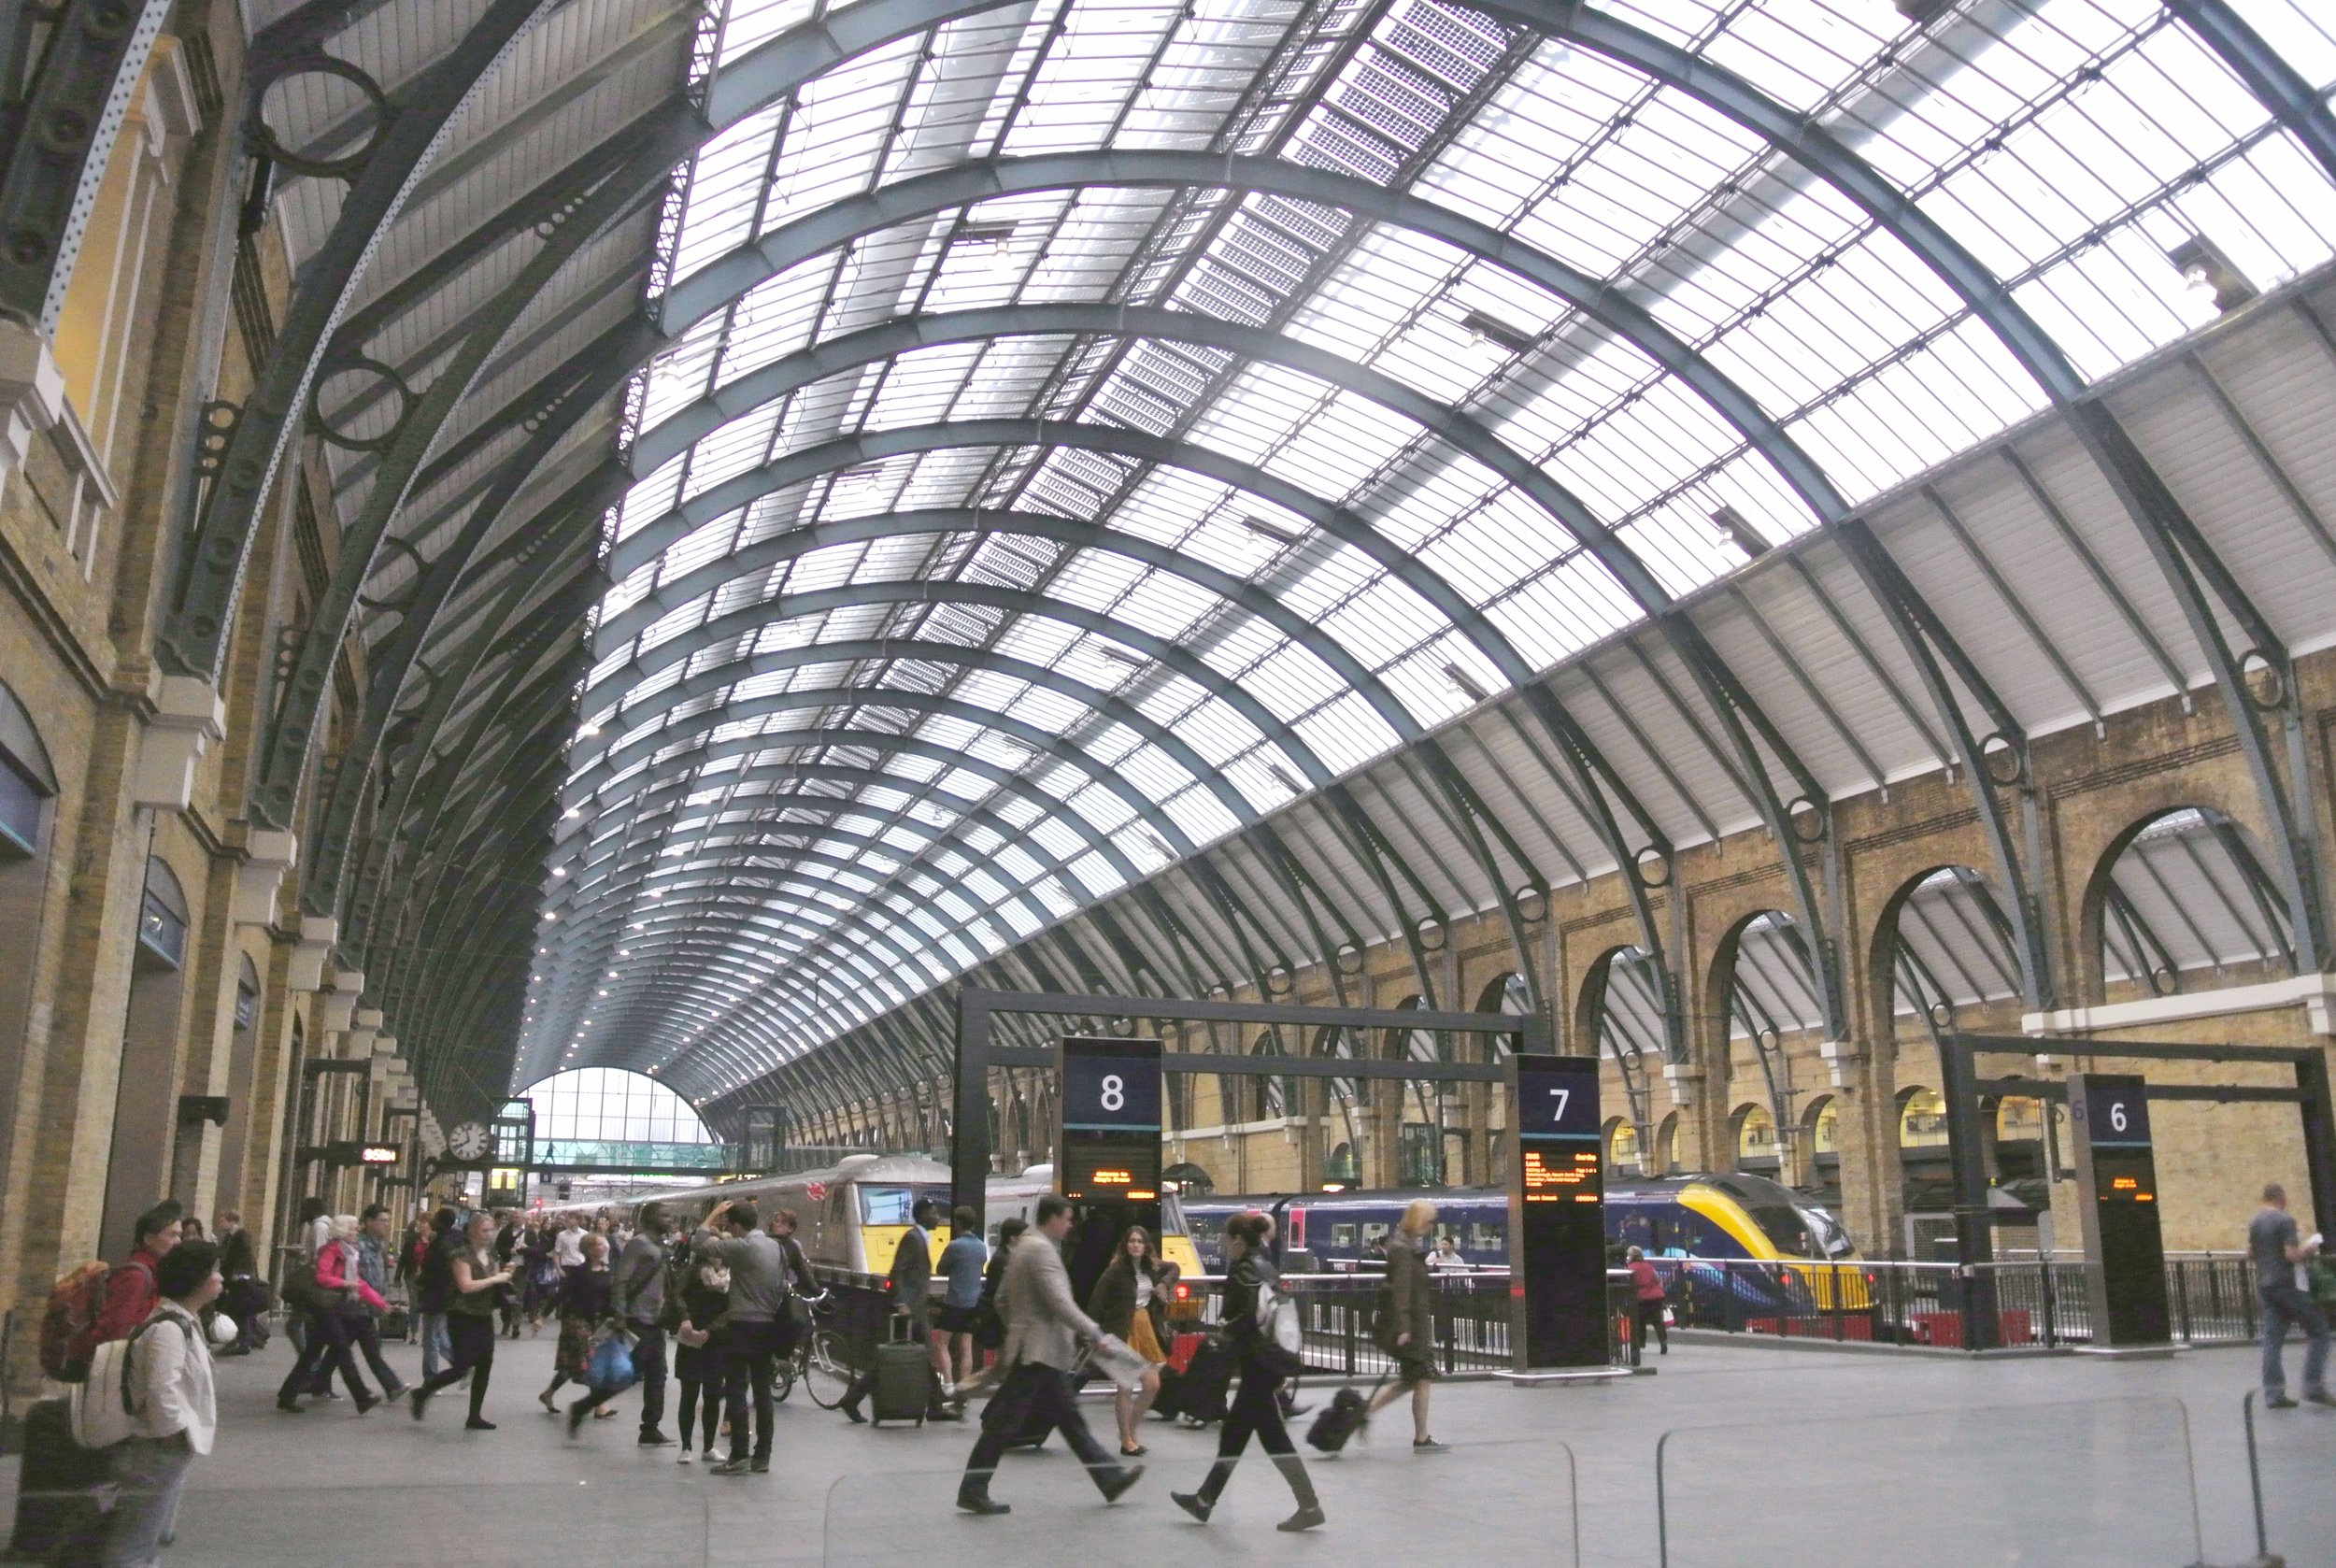 King's Cross Station | ebbony&lune